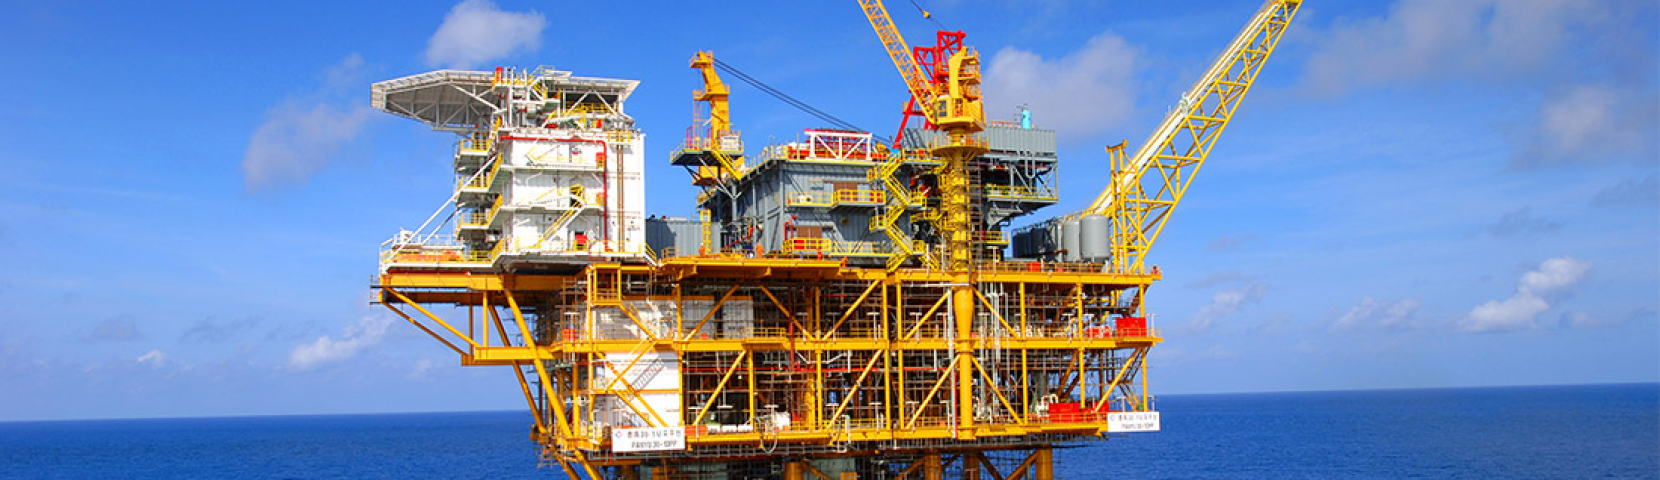 Drilling Platform of China National Offshore Oil Corporation (CNOOC)